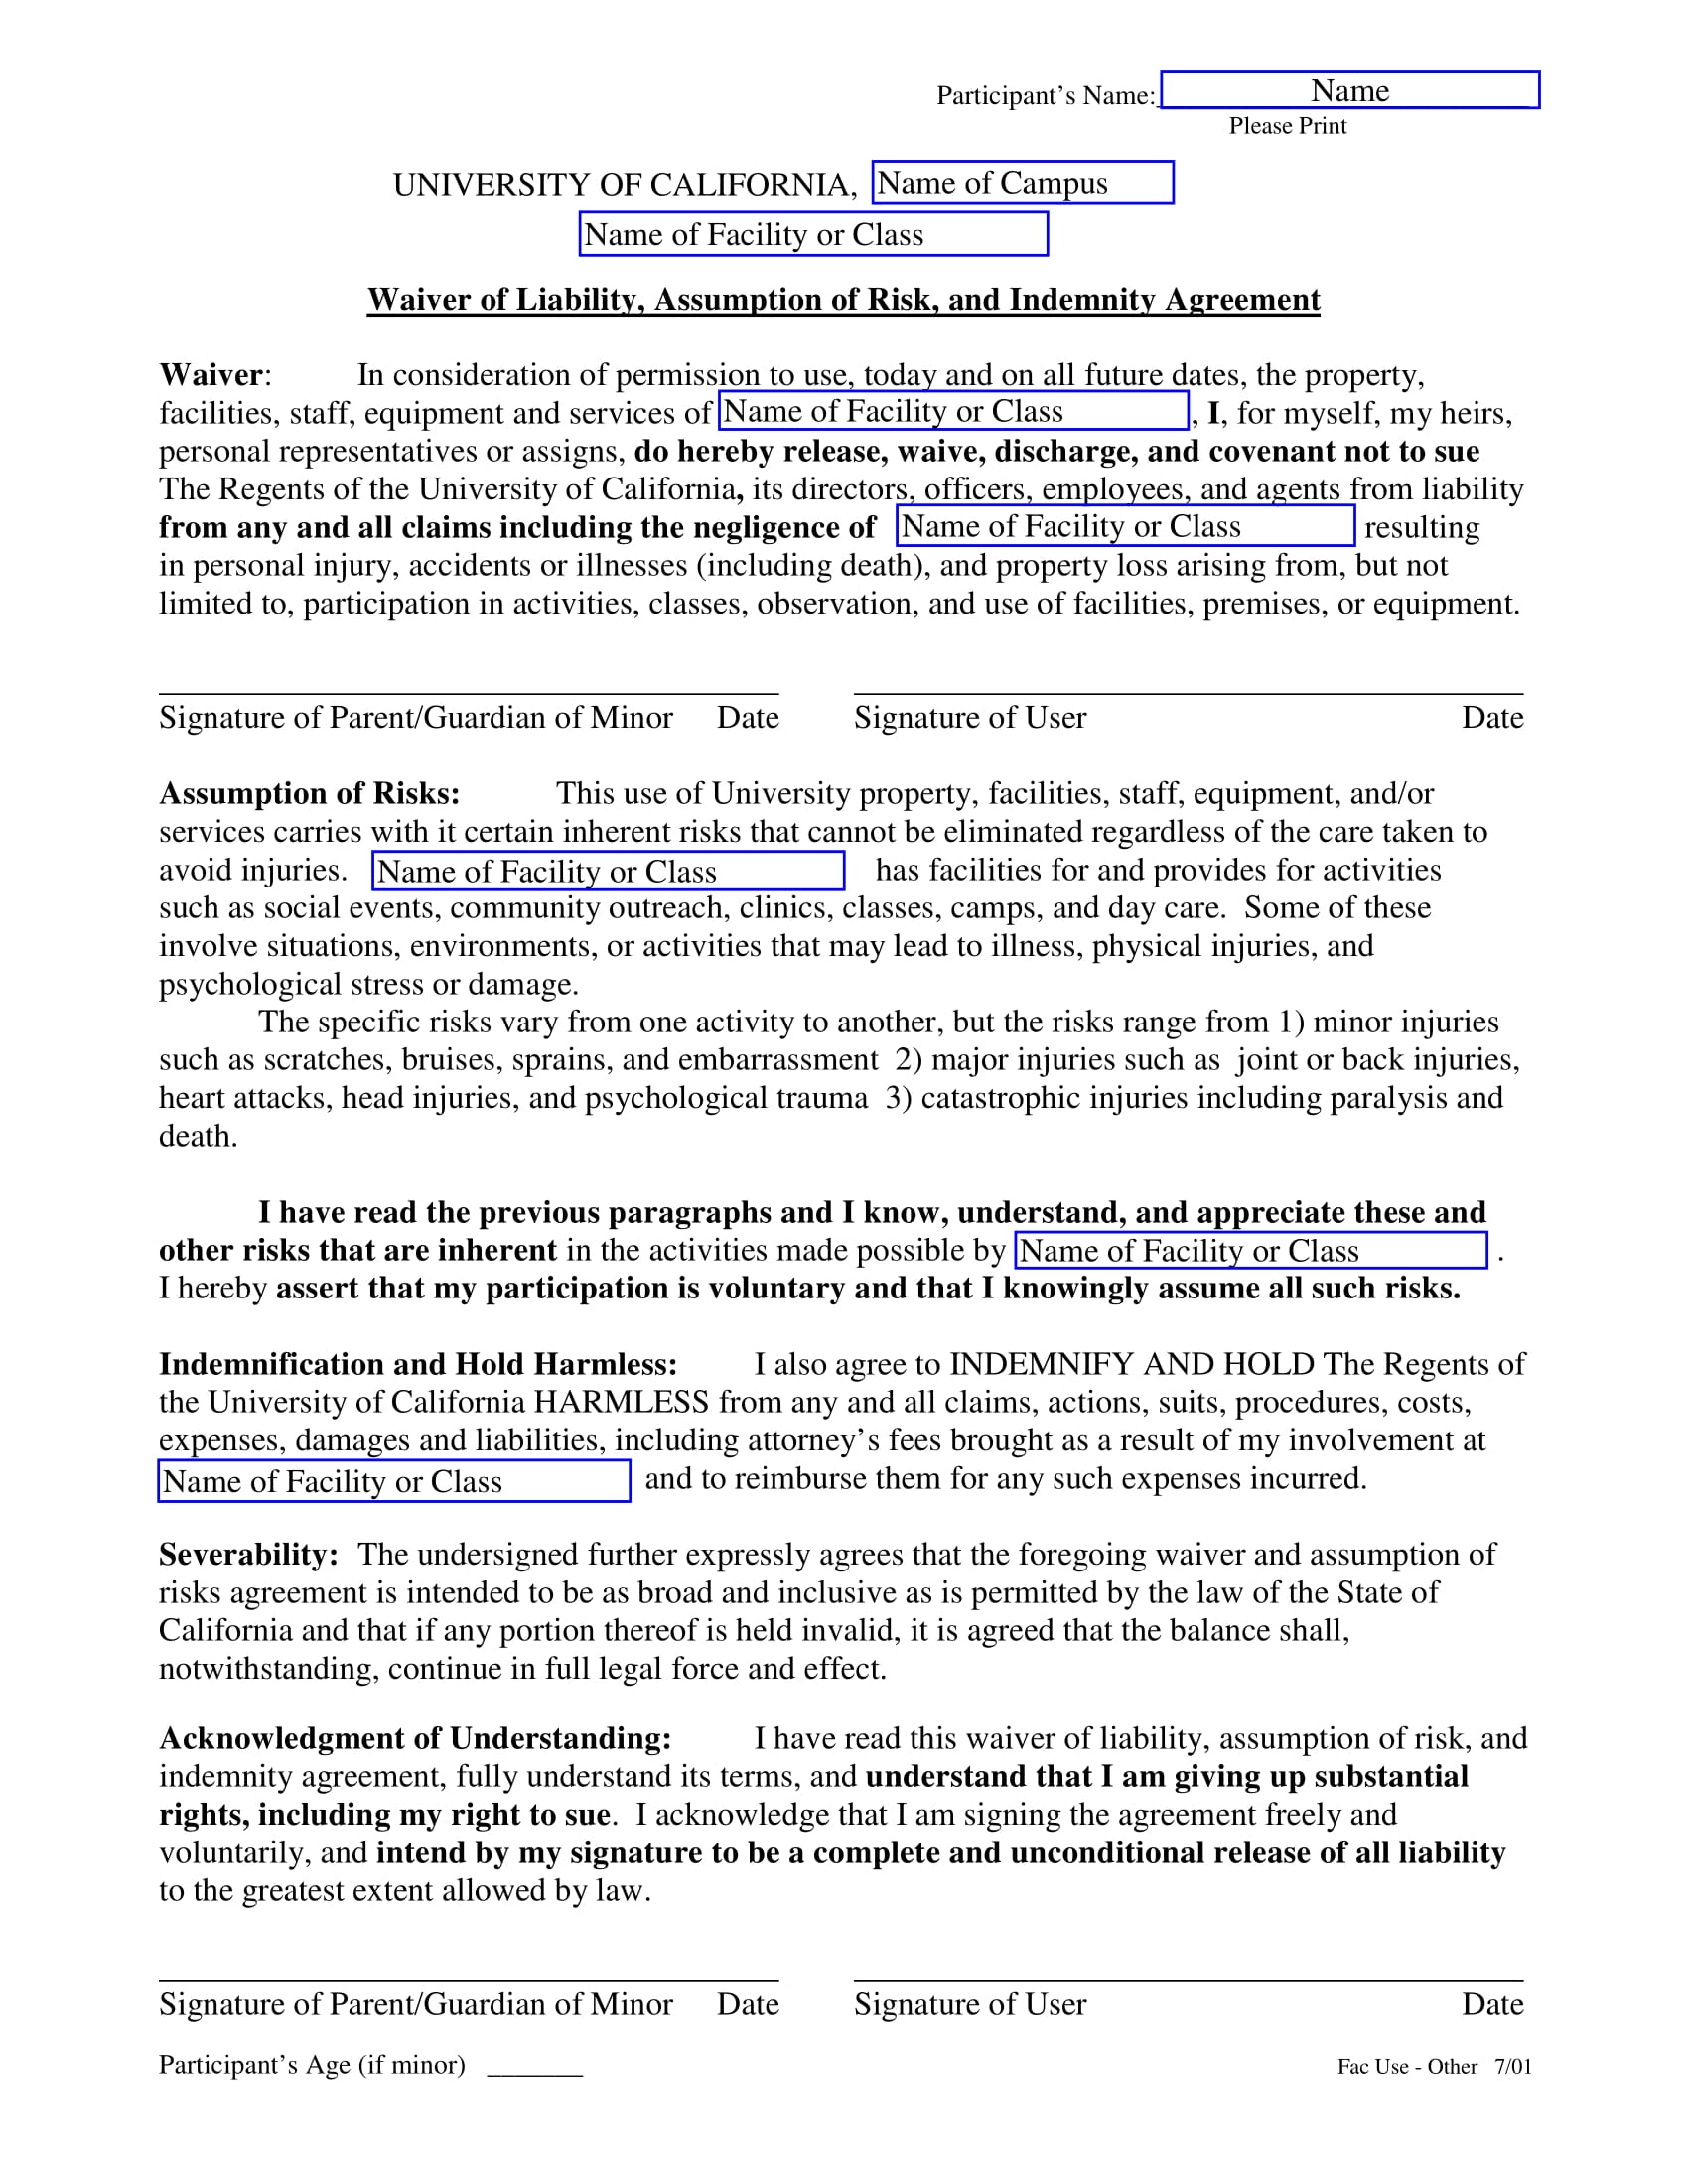 waiver of liability for facility use 1